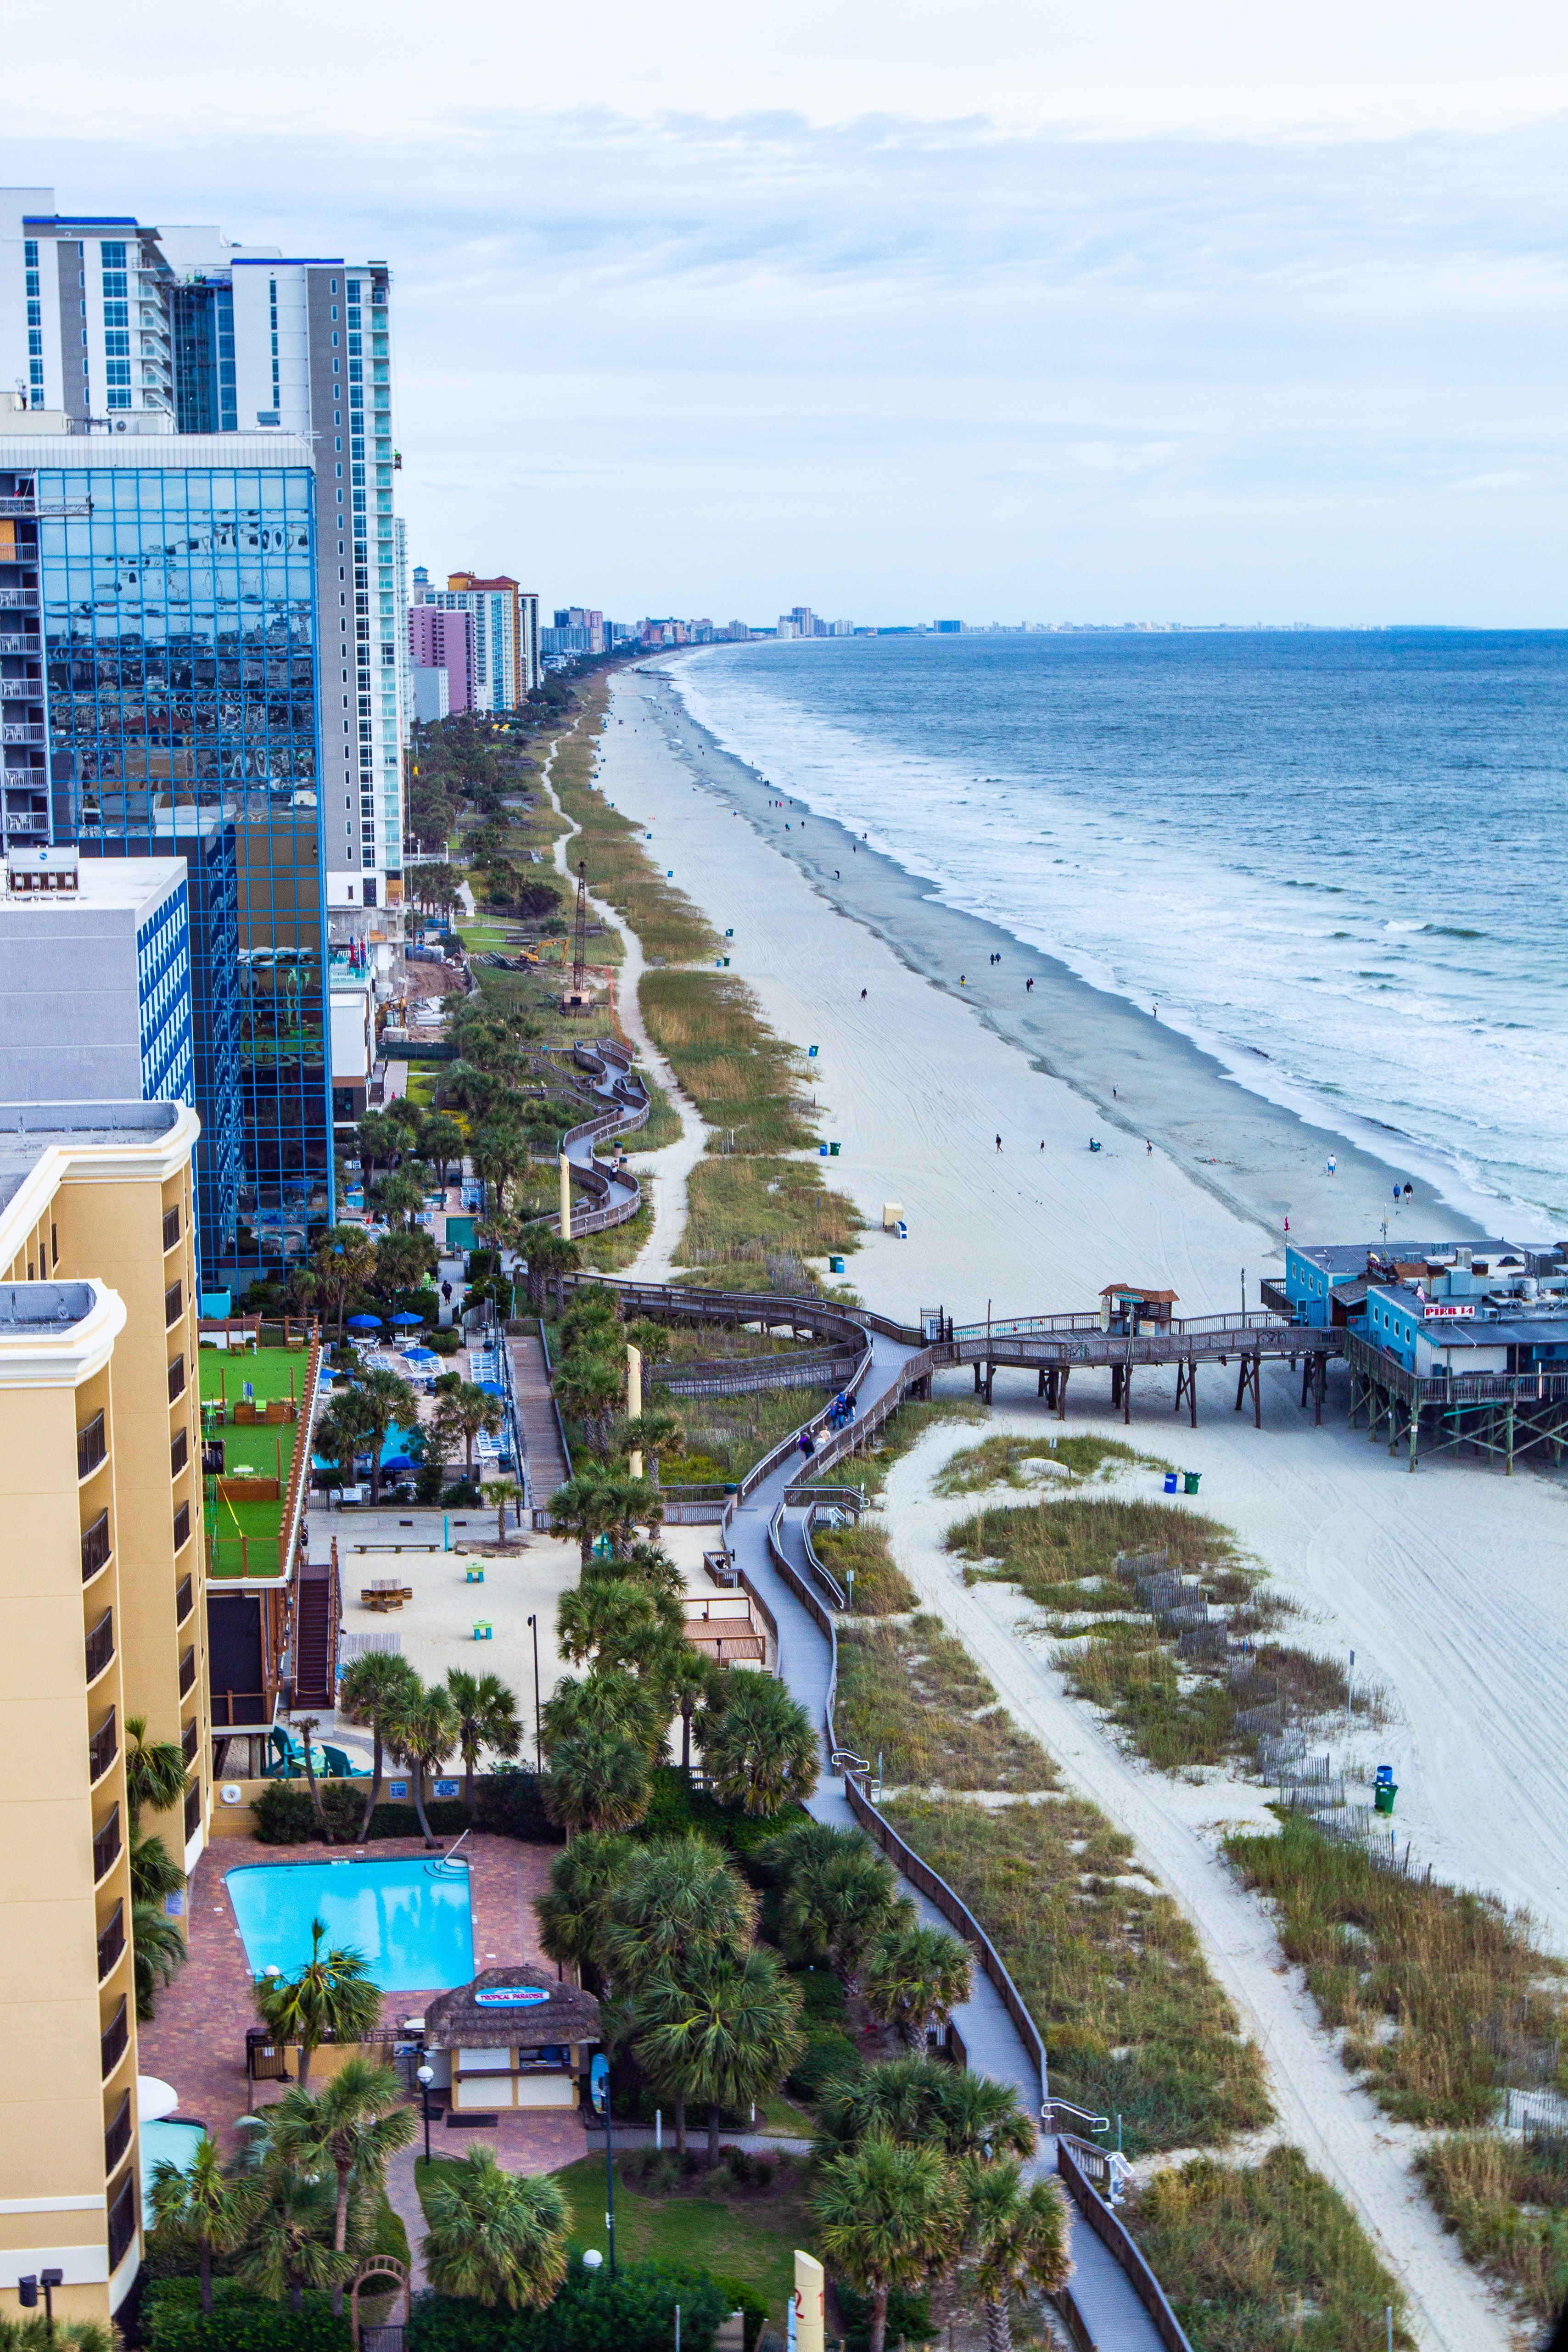 3 Day Myrtle Beach Vacation Tips Itinerary Guide In 2021 Myrtle Beach Travel Beach Vacation Tips Visit Myrtle Beach